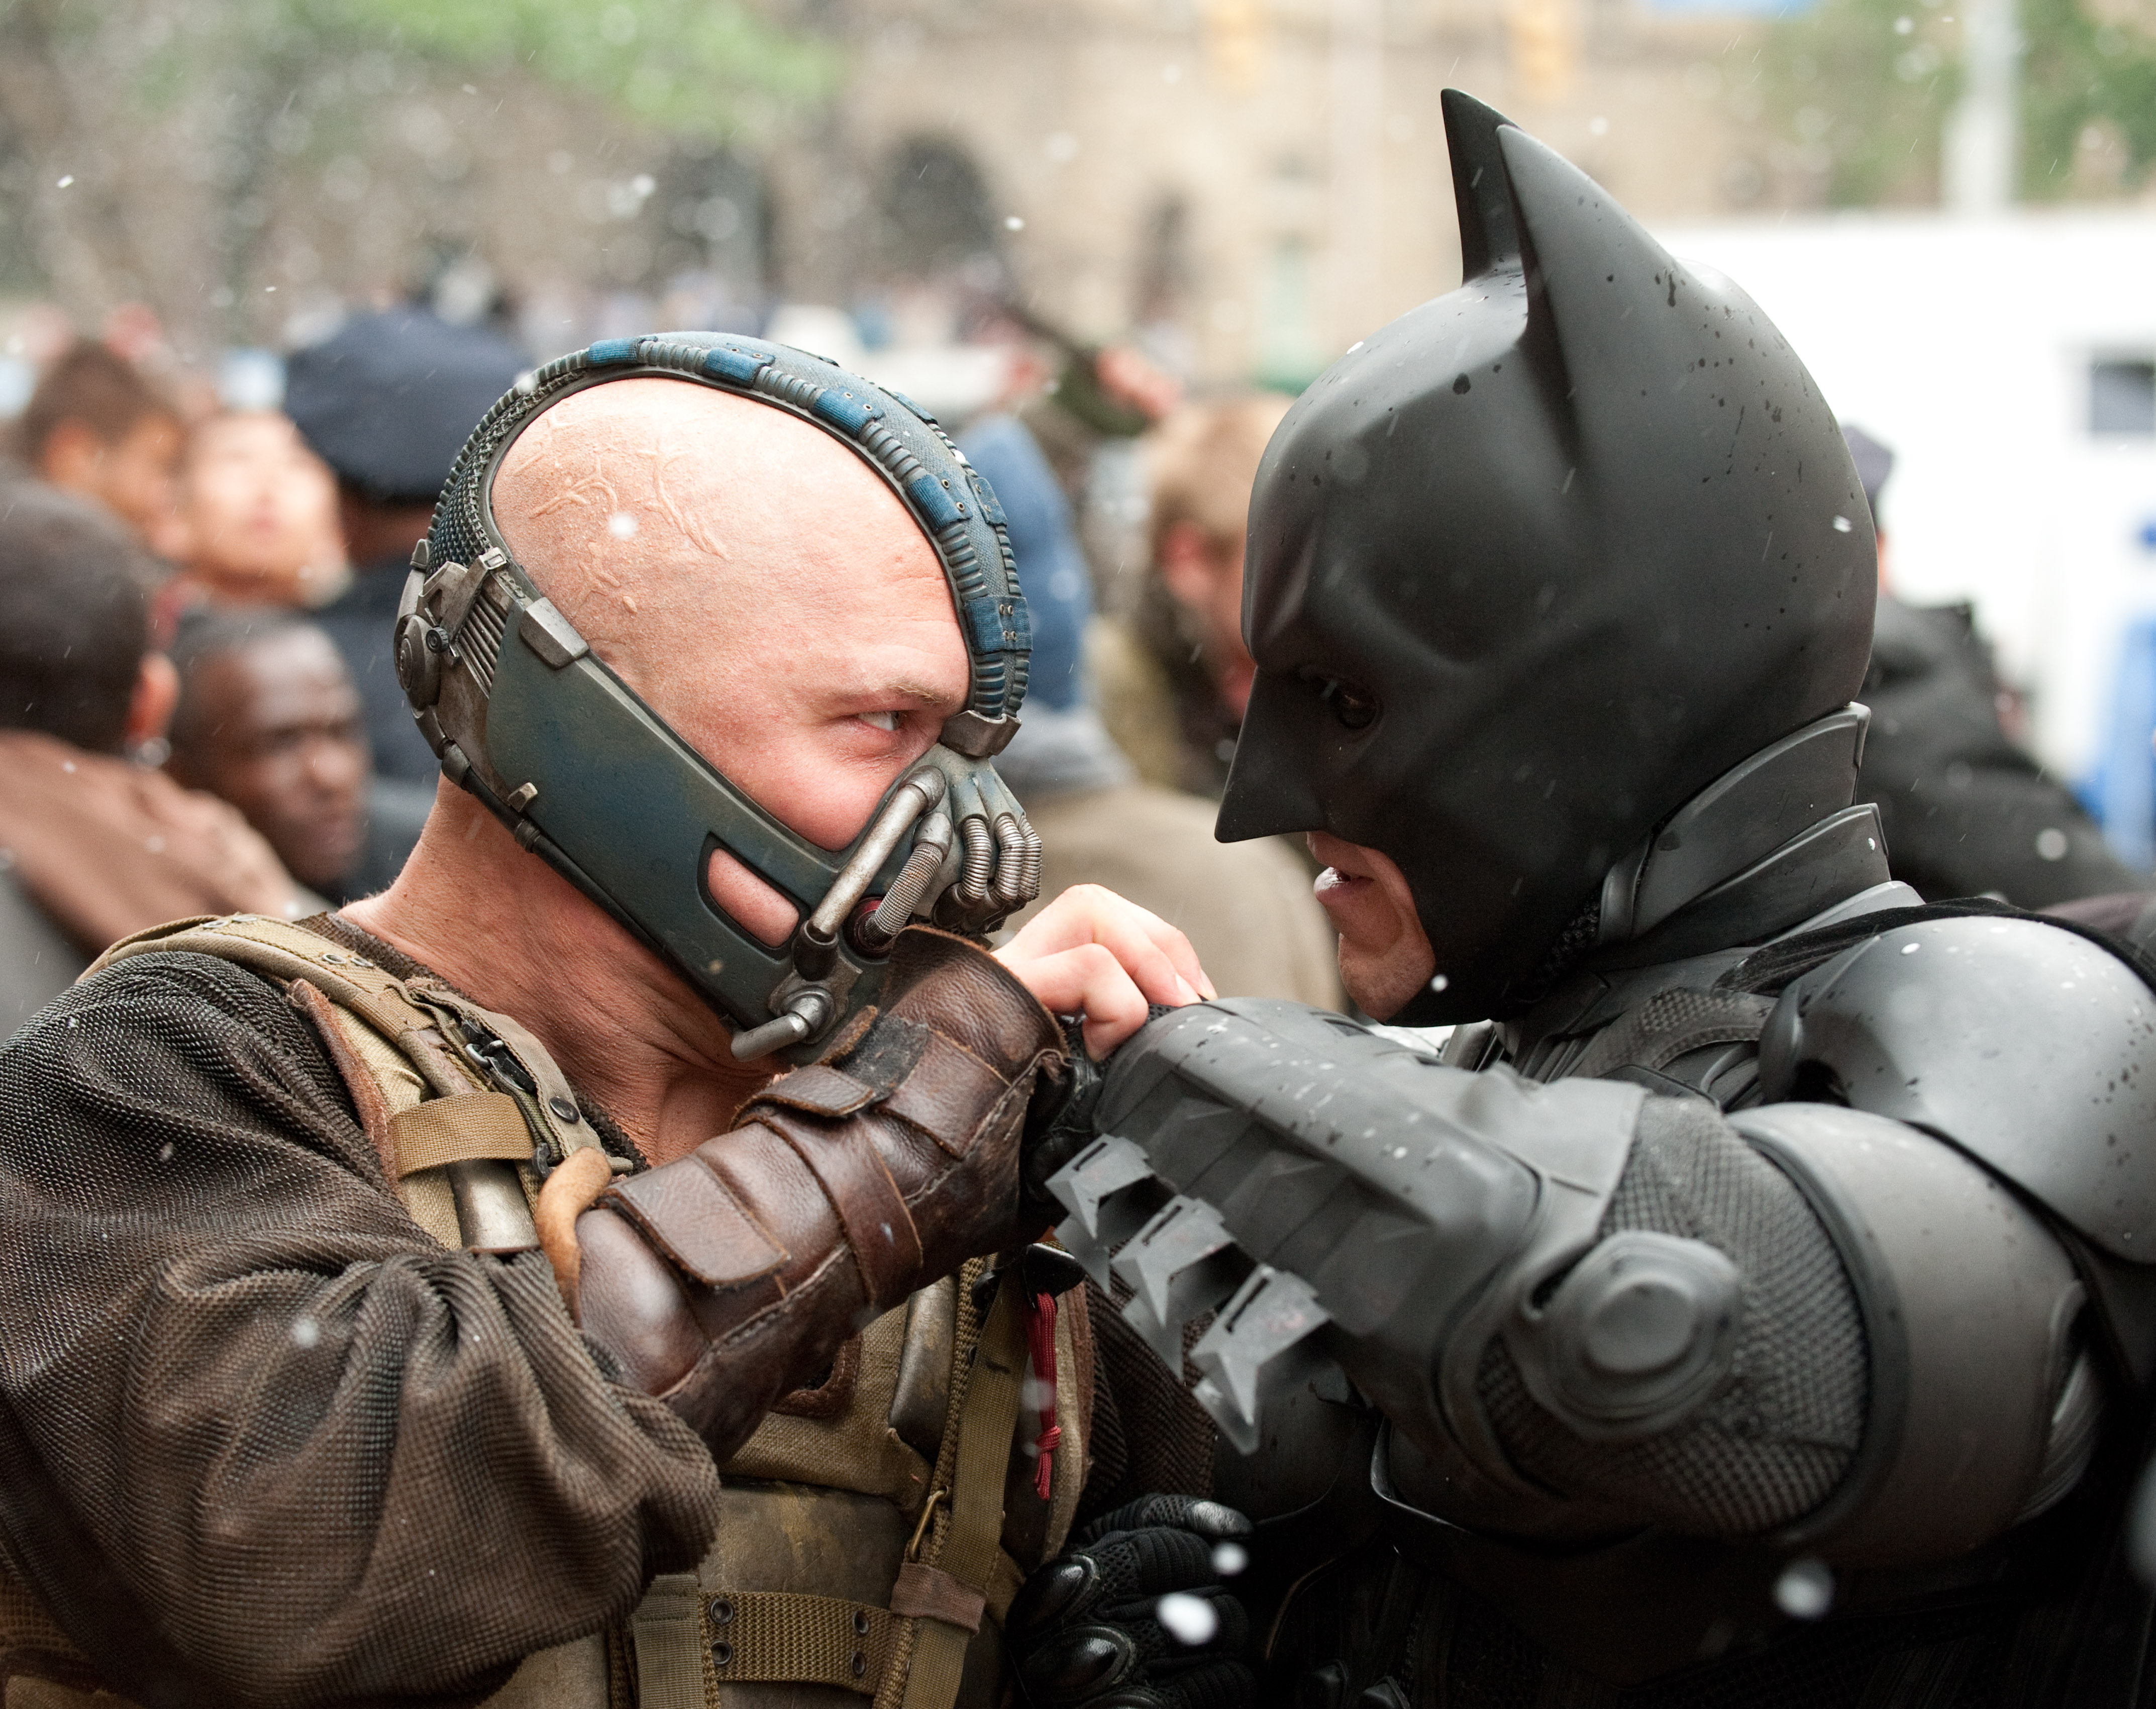 http://themoviebros.files.wordpress.com/2012/05/darkknight.jpg